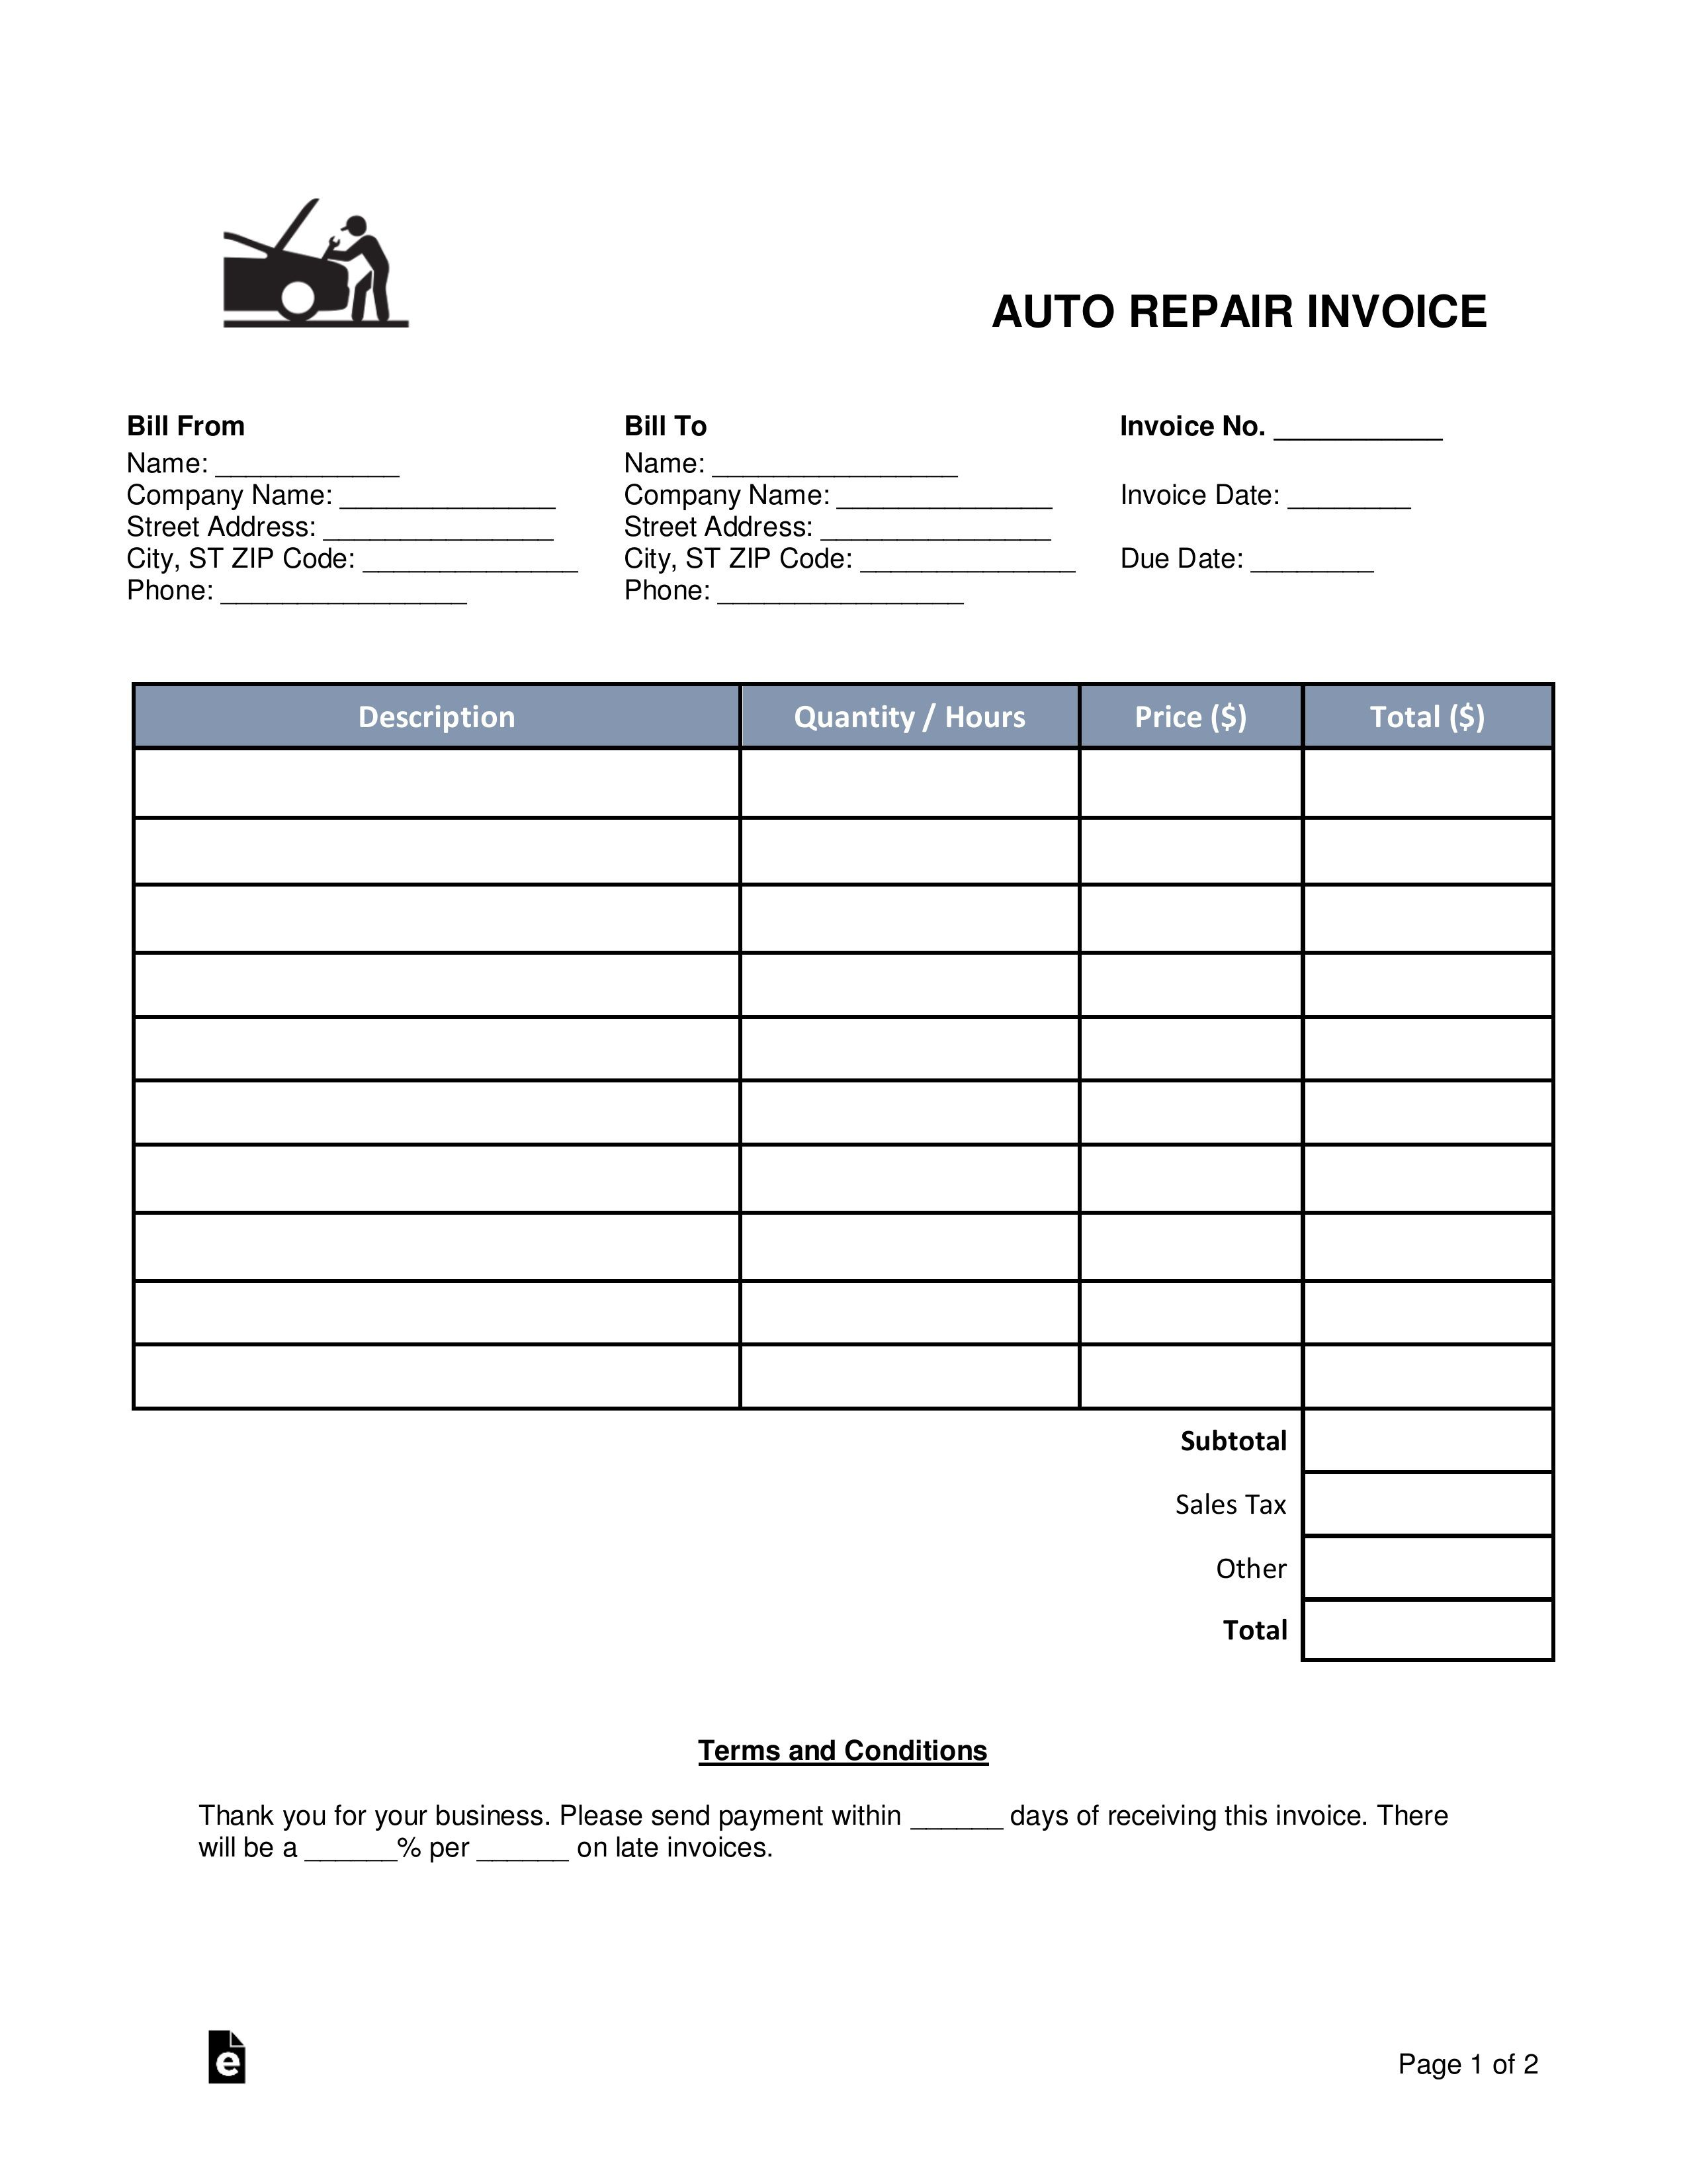 003 Fearsome Microsoft Word Auto Repair Invoice Template High Definition Full